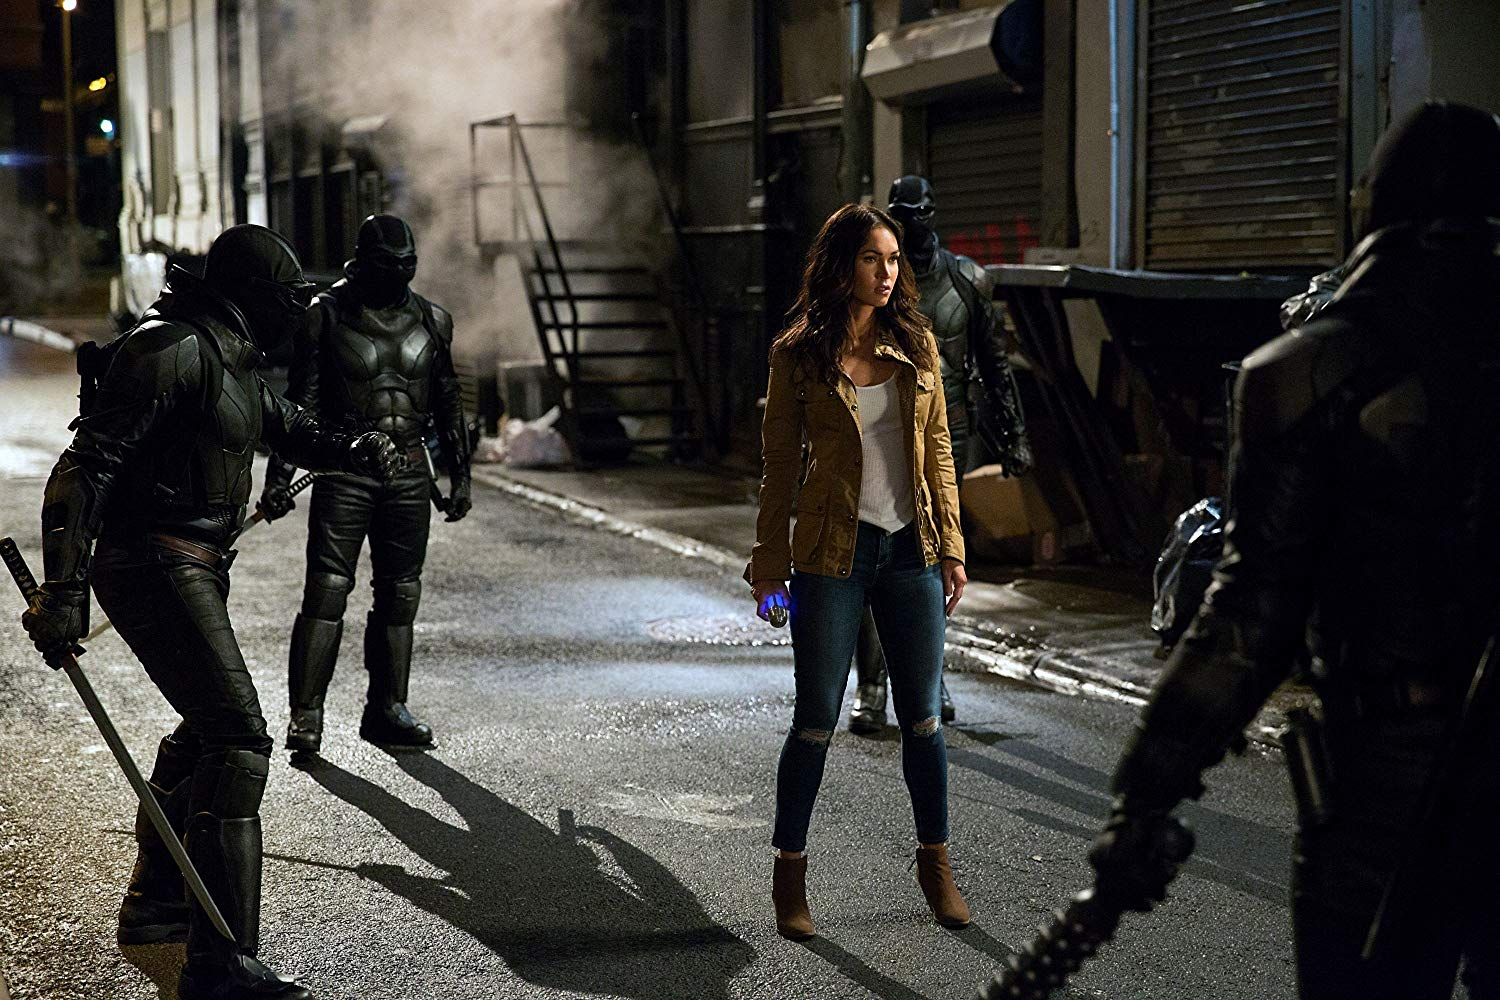 April O'Neil (Megan Fox) surrounded by members of The Foot in Teenage Mutant Ninja Turtles: Out of the Shadows (2016)